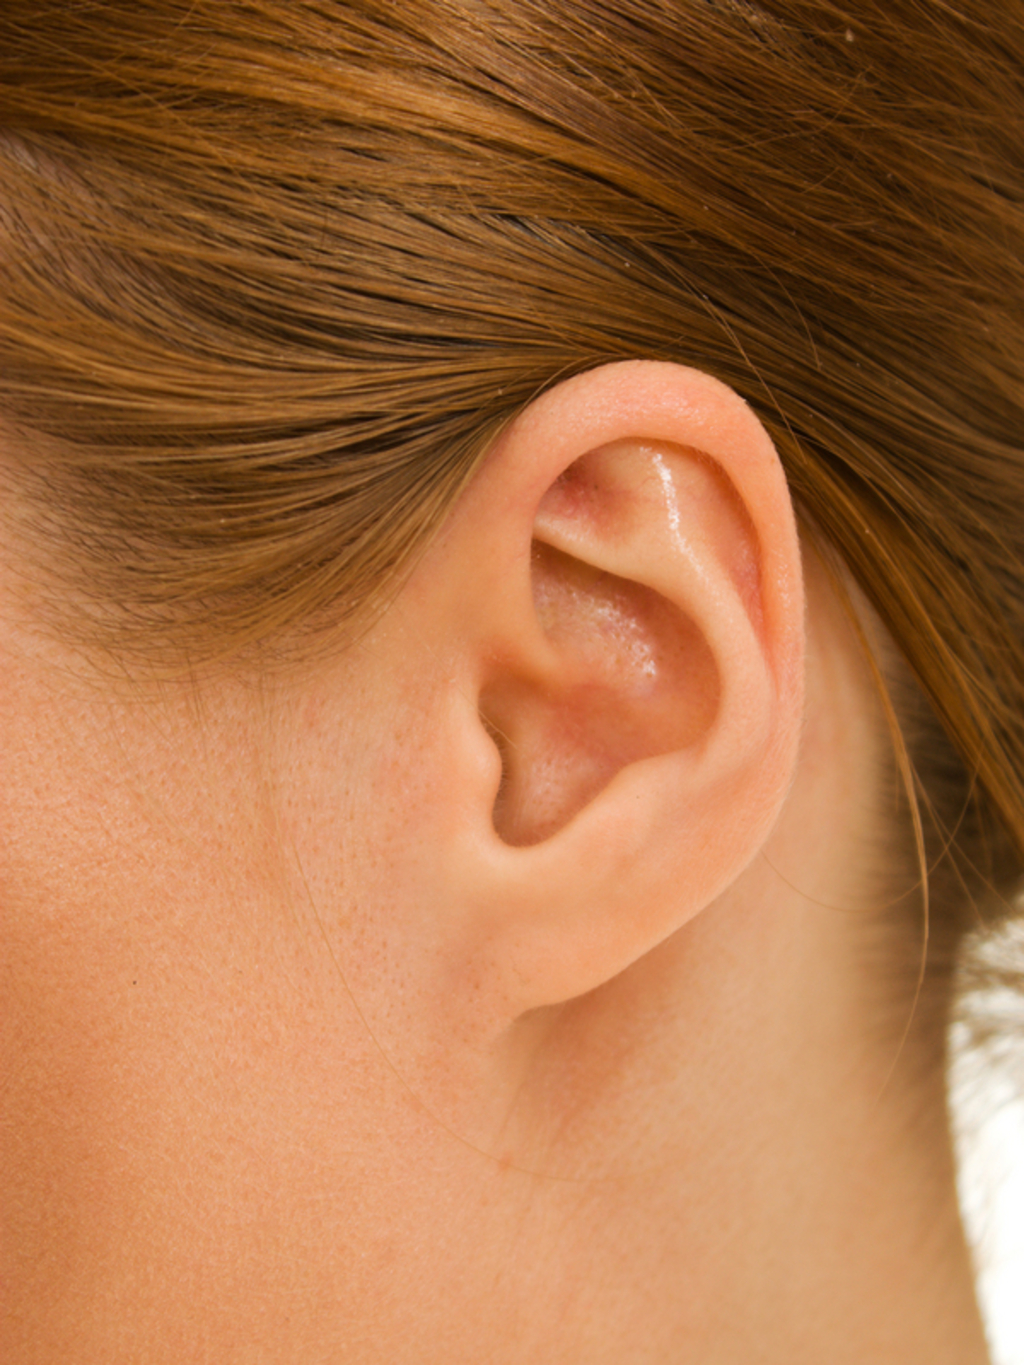 Ear irrigation - Doctor answers on HealthTap